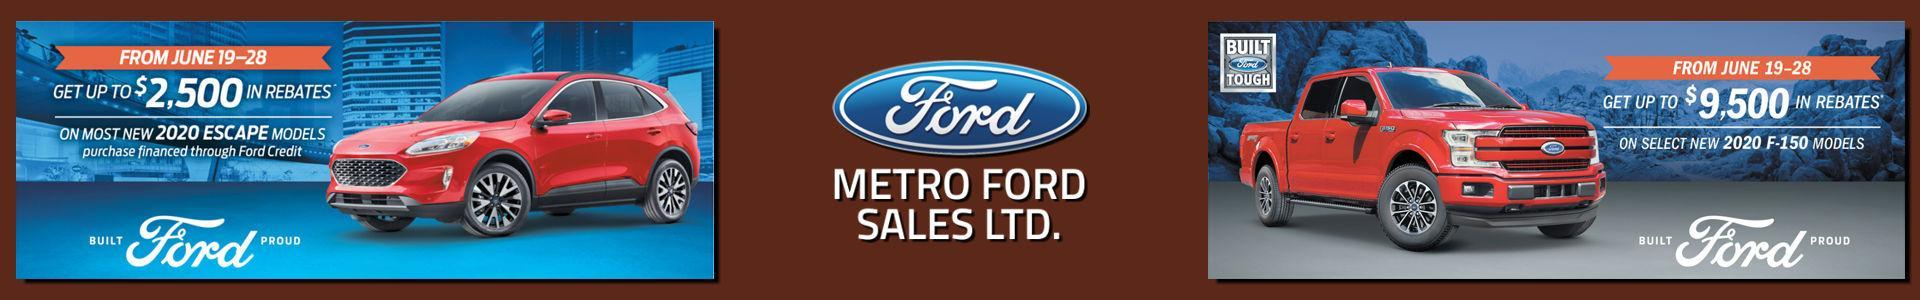 Metro Ford, Built for the Road ahead, serving Calgary, Alberta